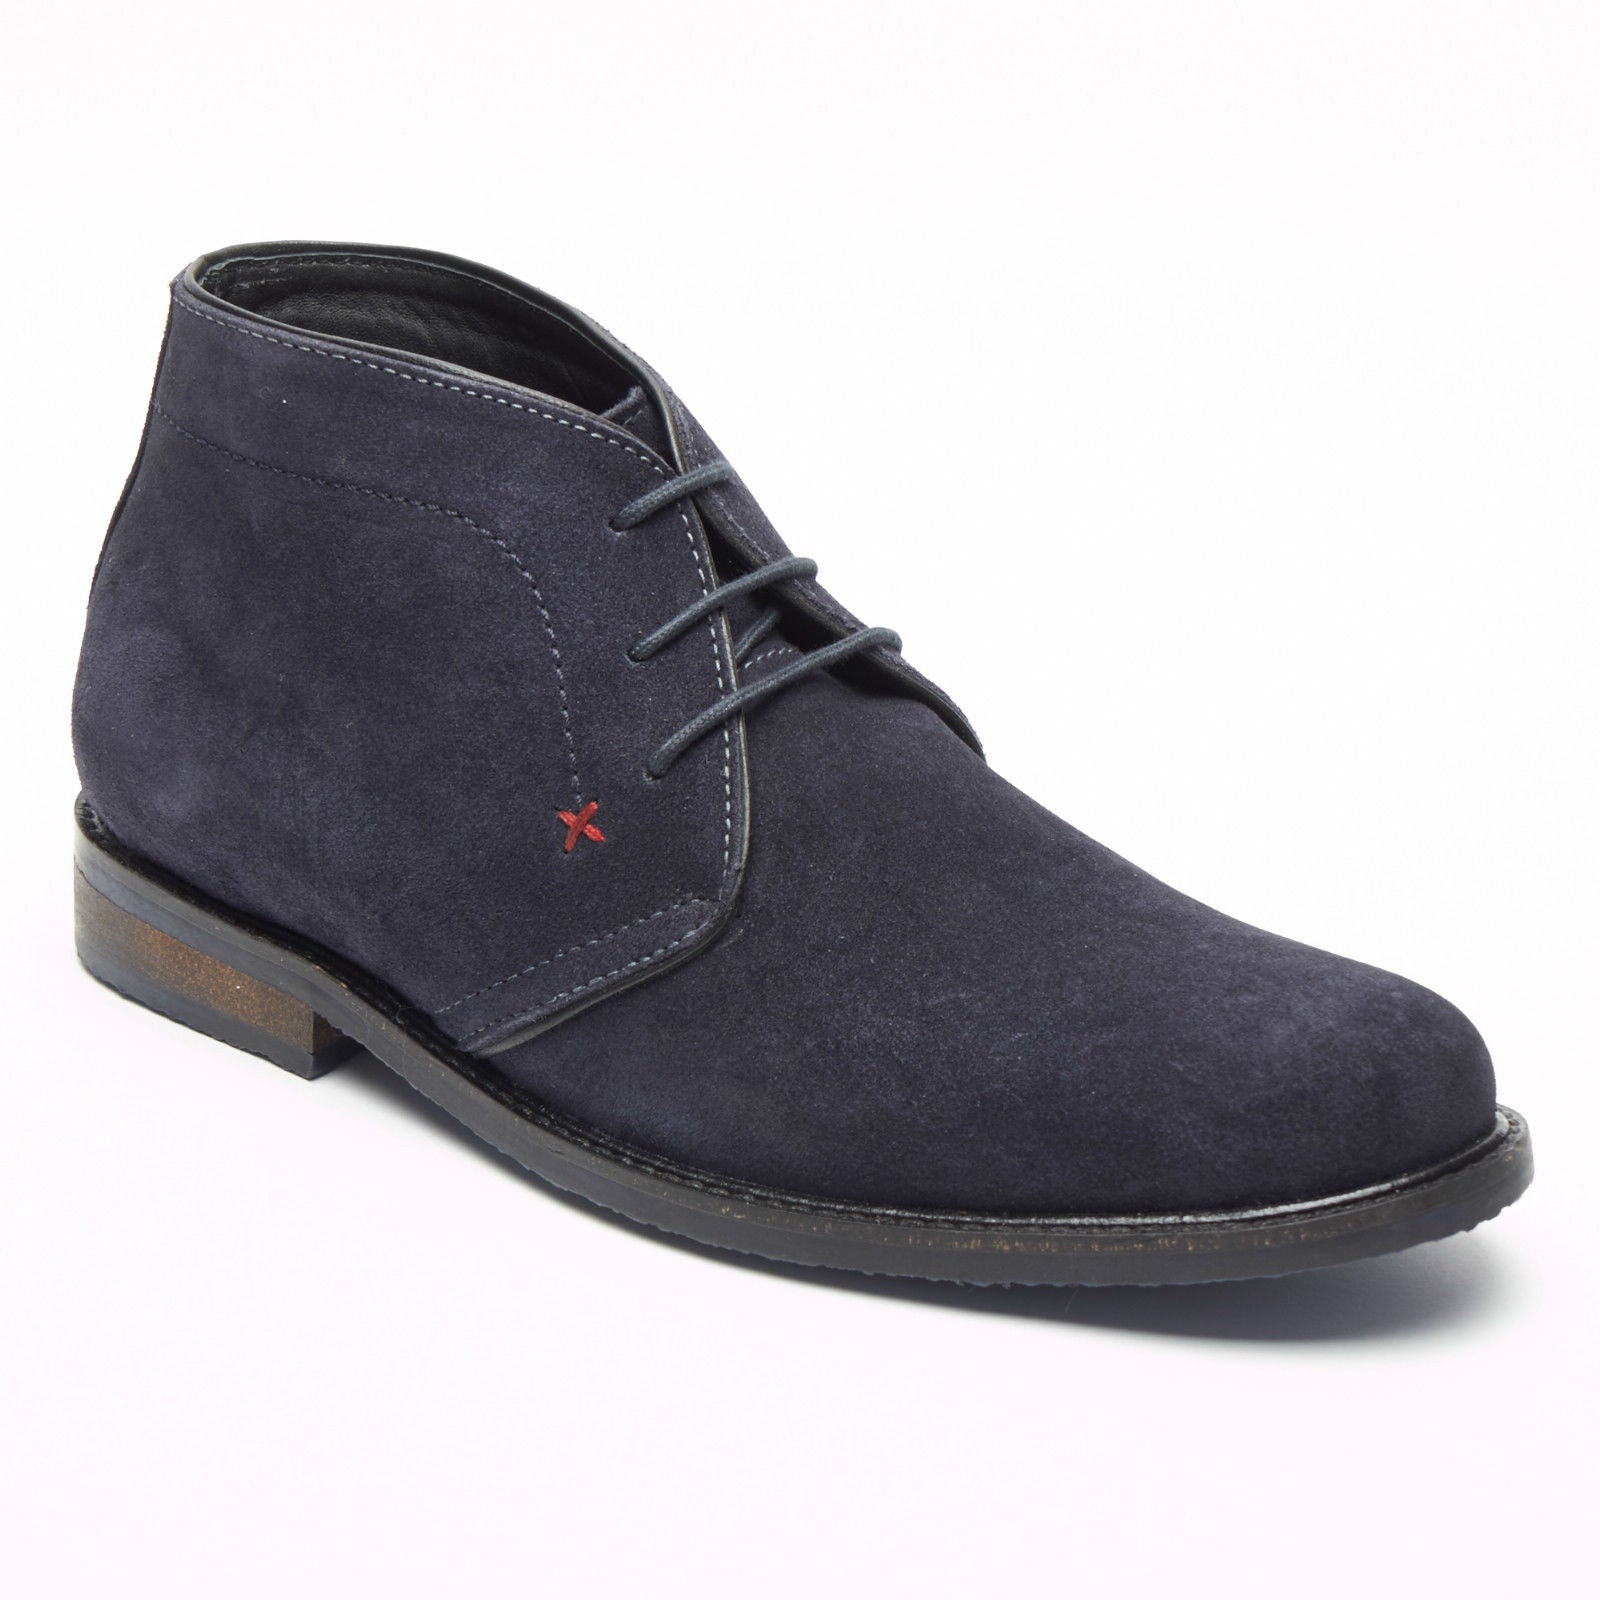 Mens Suede Desert Boots - SF-5151 Navy Blue